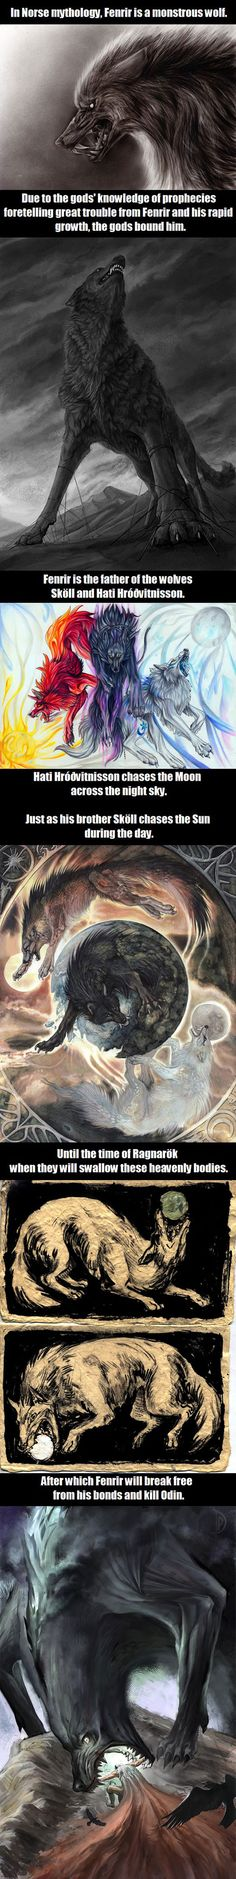 Wolves In Norse Mythology. (Nice picture of Fenrir eating Odin at the end....)